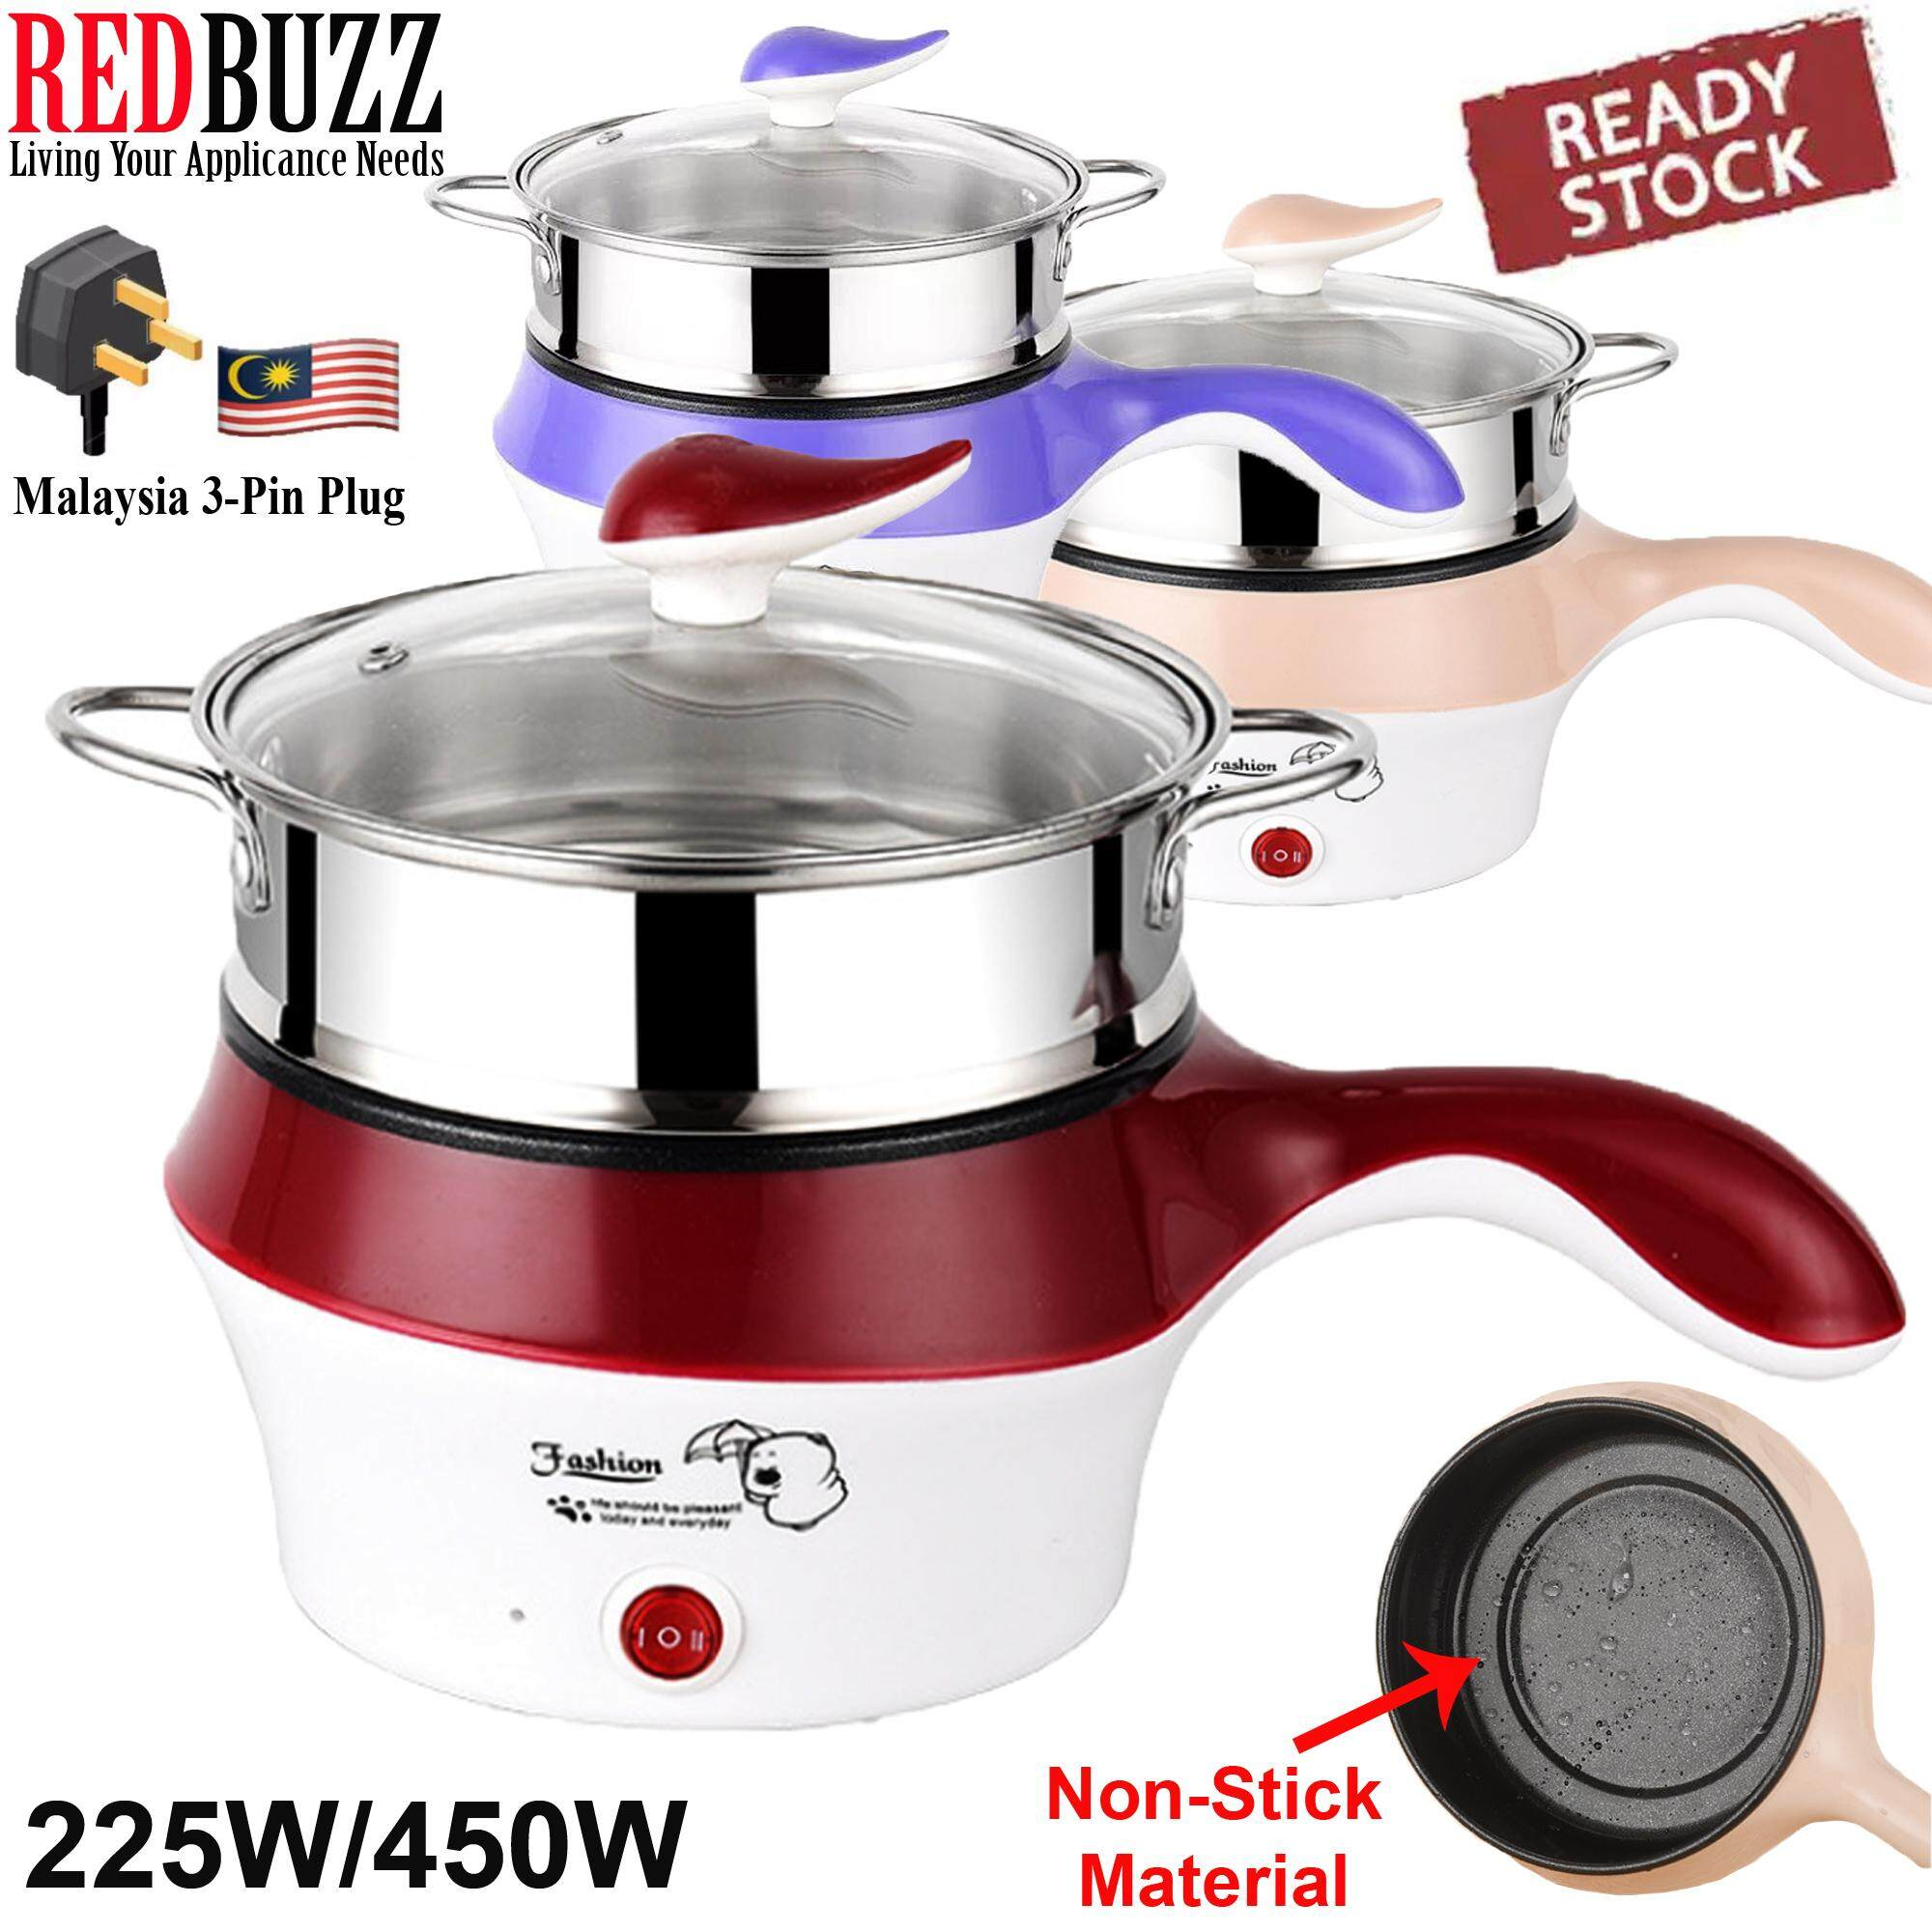 REDBUZZ 1.5L Multifunction Non Stick Electric Mini Cooker Pot Electric Cooking Pot Frying Pan with Steamer - Cute Long Handle Design (Free Chopstick,Spoon and Shovel)